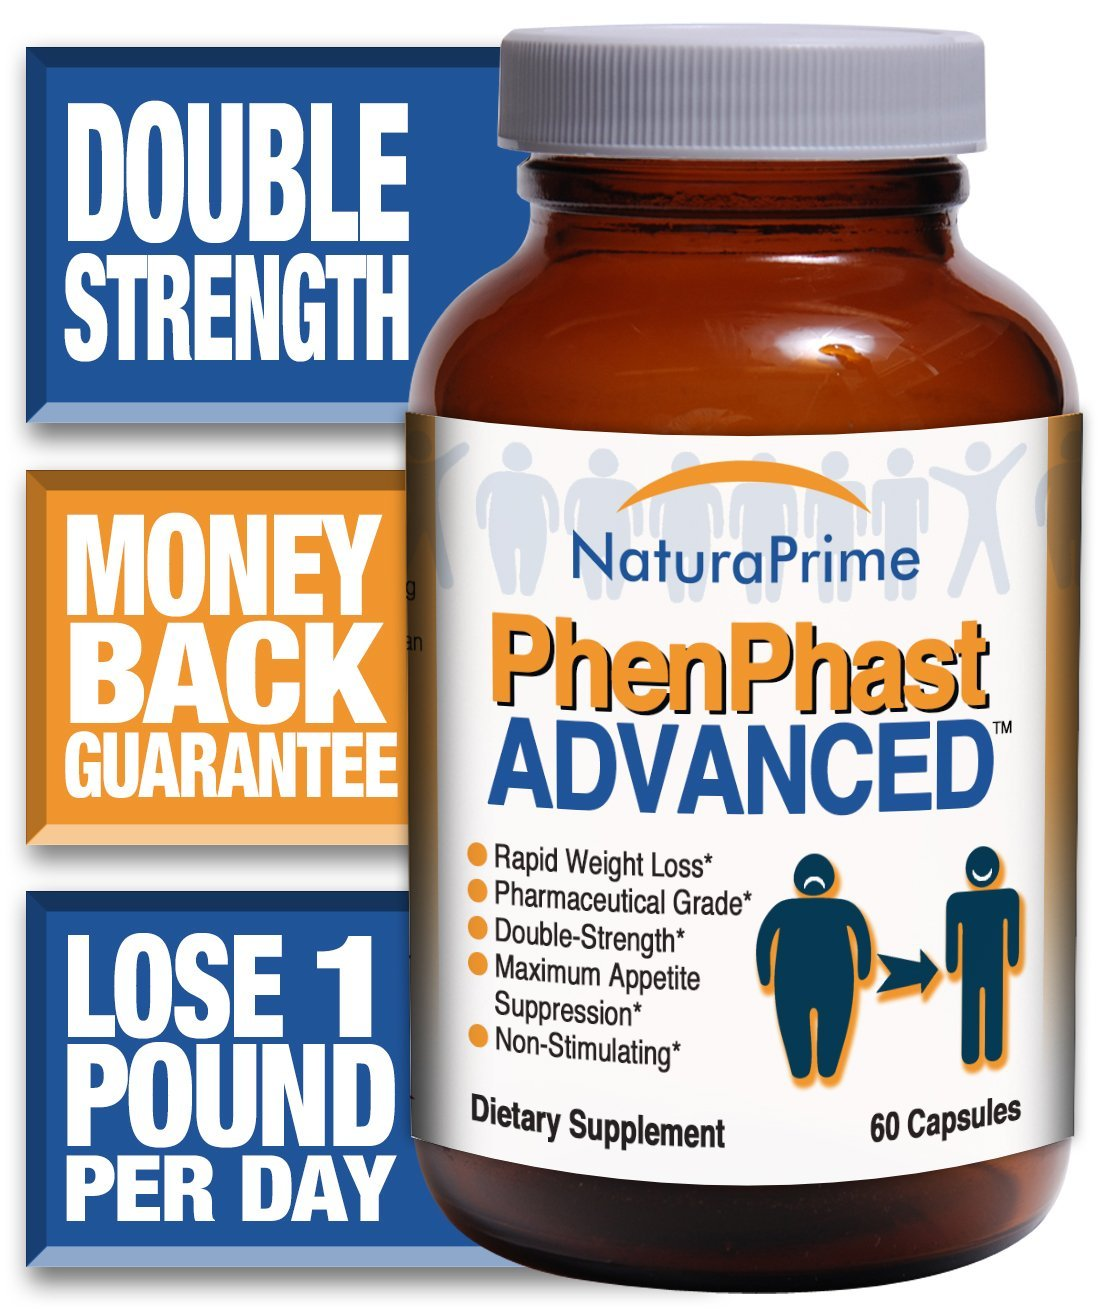 PhenPhast ADVANCED - Double-Strength for Rapid Weight Loss - GUARANTEED! by NaturaPrime